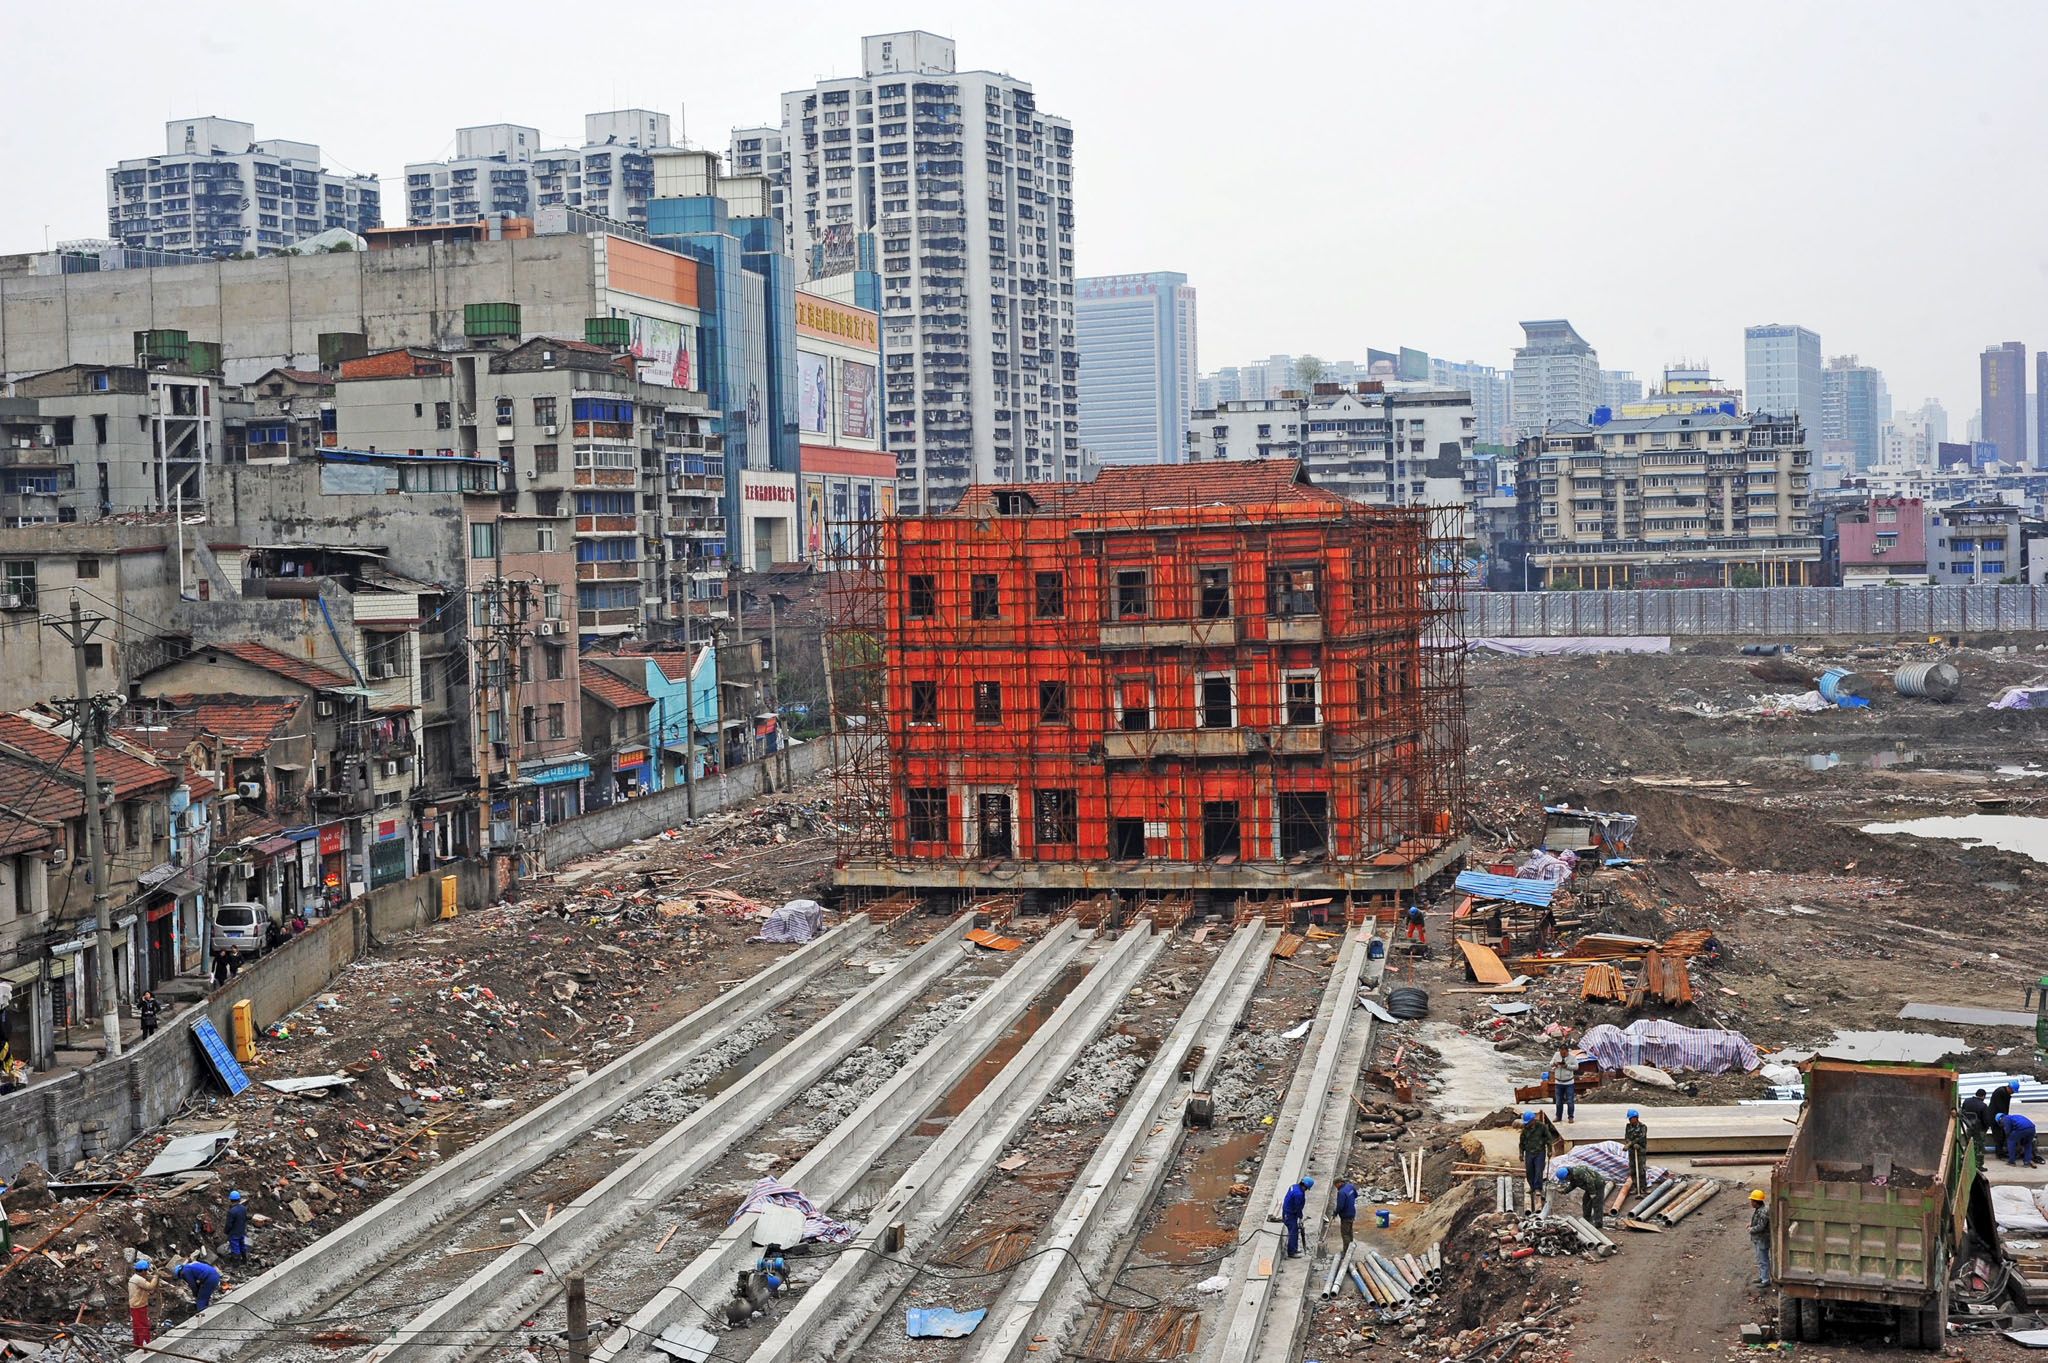 A historical building is seen being moved to make way for new constructions in Wuhan...A historical building is seen being moved to make way for new constructions in Wuhan, Hubei Province, China, in this picture taken March 9, 2016. REUTERS/Stringer ATTENTION EDITORS - THIS PICTURE WAS PROVIDED BY A THIRD PARTY. THIS PICTURE IS DISTRIBUTED EXACTLY AS RECEIVED BY REUTERS, AS A SERVICE TO CLIENTS. CHINA OUT. NO COMMERCIAL OR EDITORIAL SALES IN CHINA.